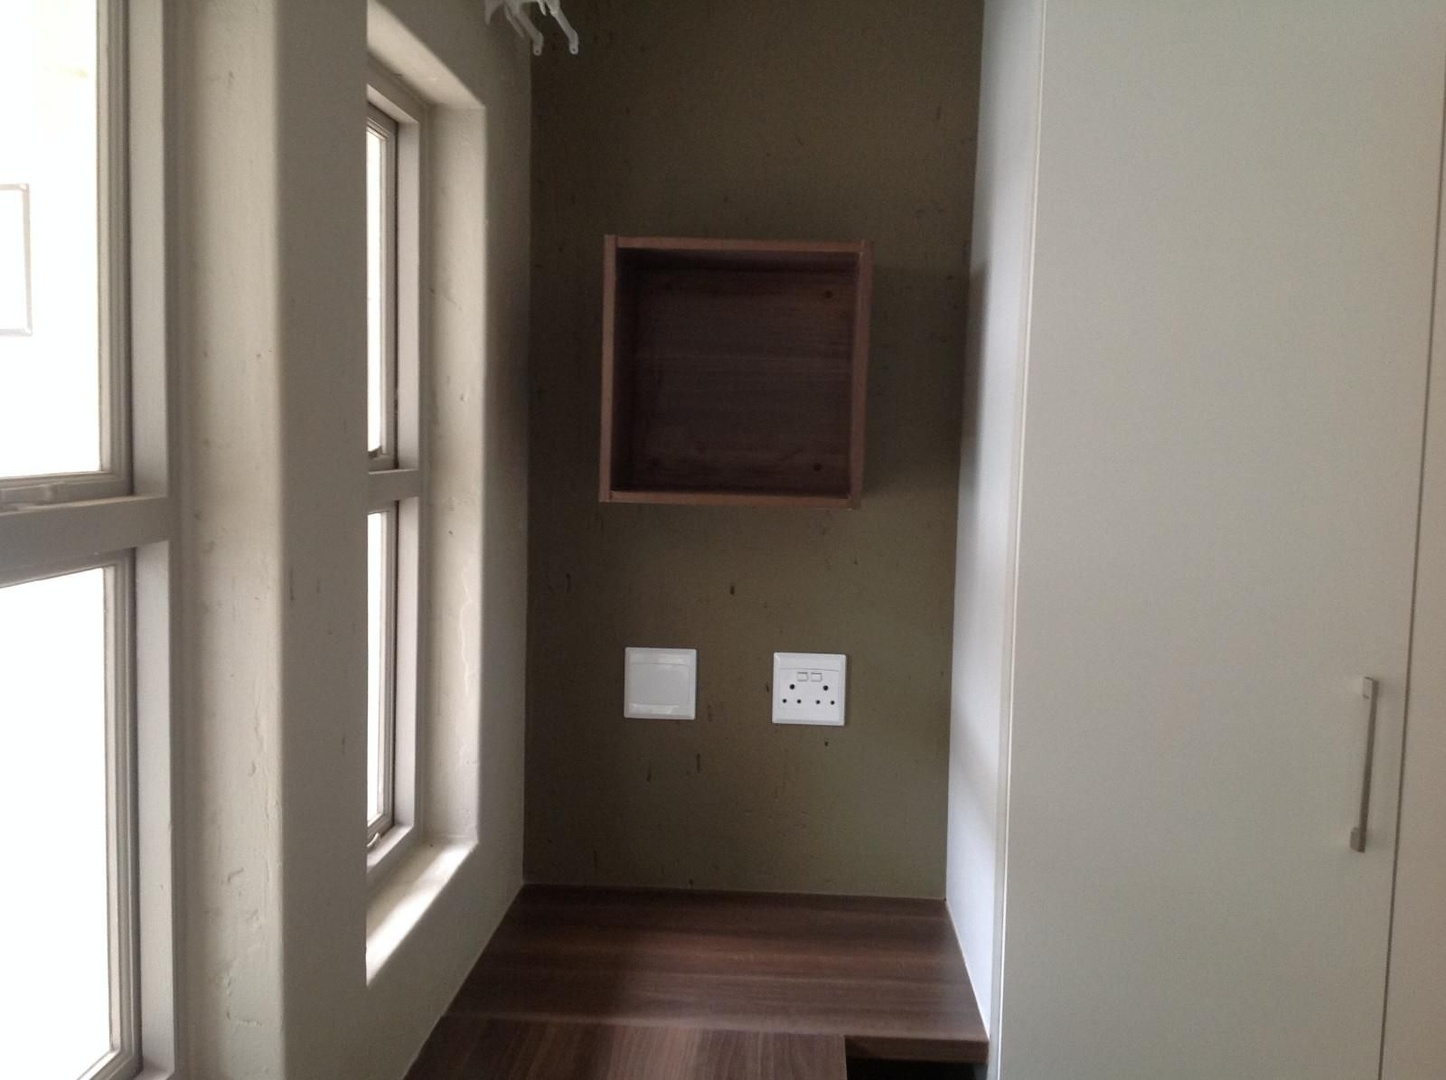 Apartment in Bult - image (38).jfif